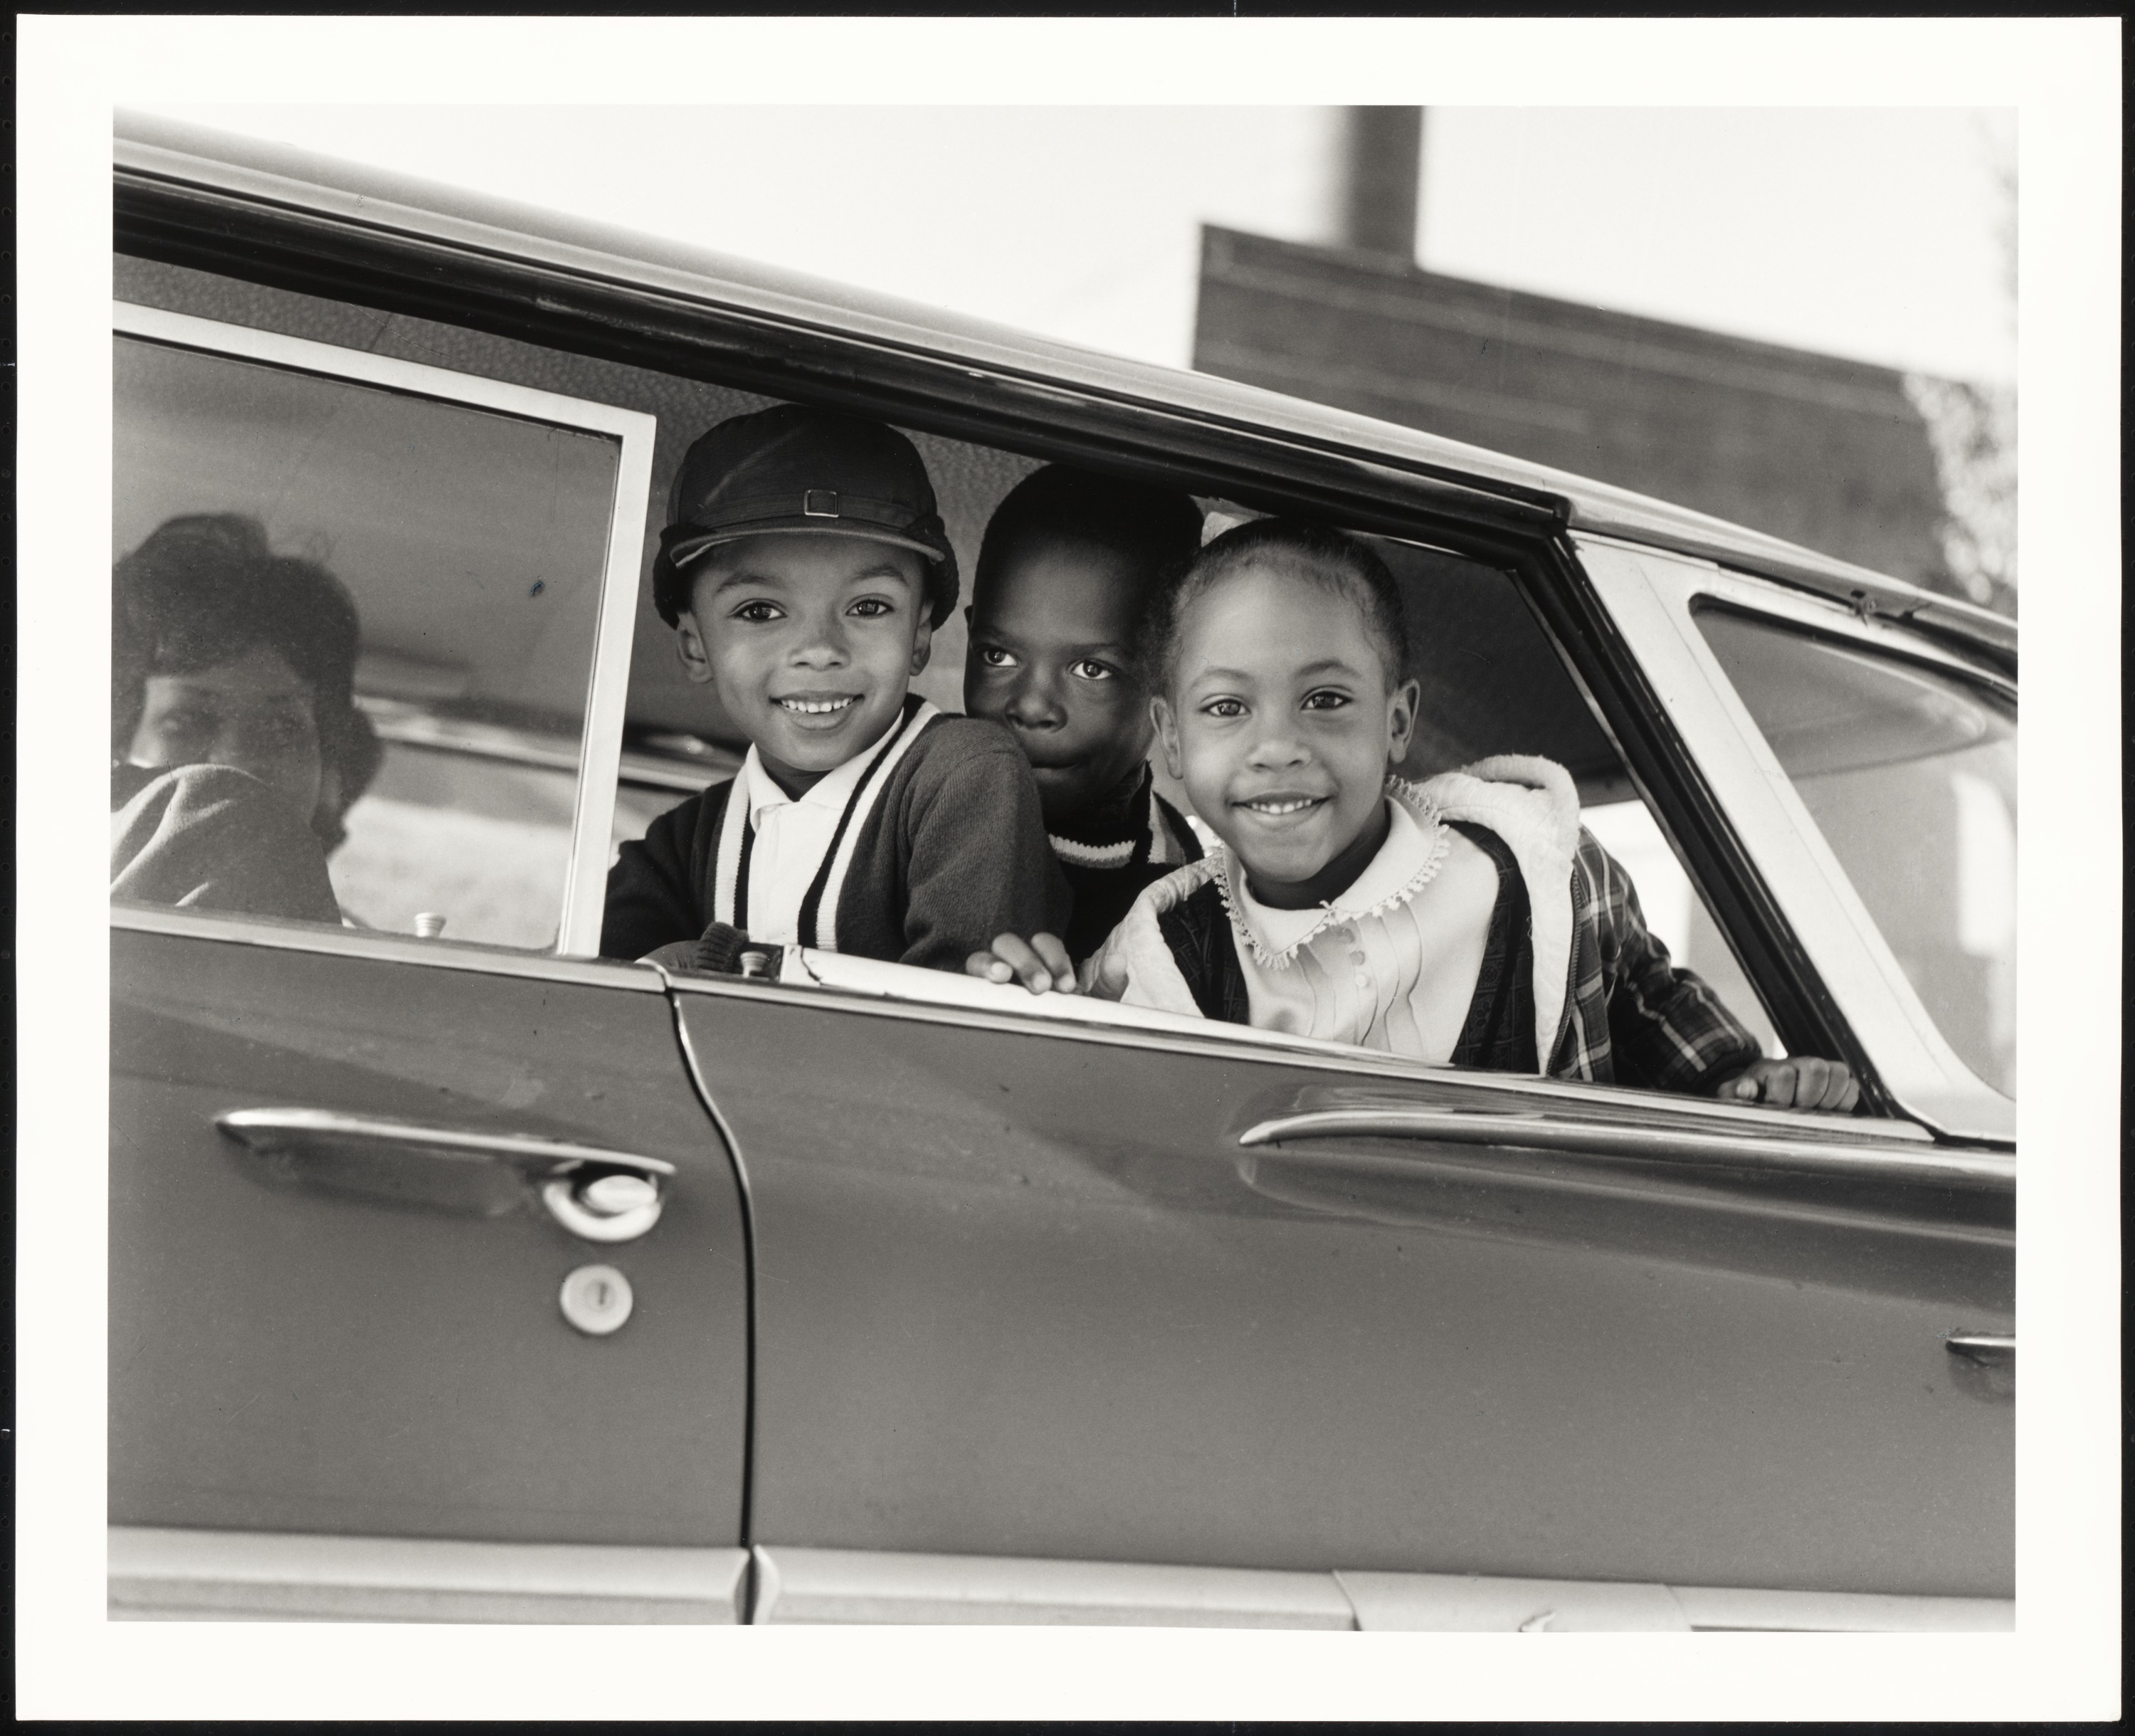 """More Than a Picture"" Exhibit at the Smithsonian National Museum of African American History and Culture"